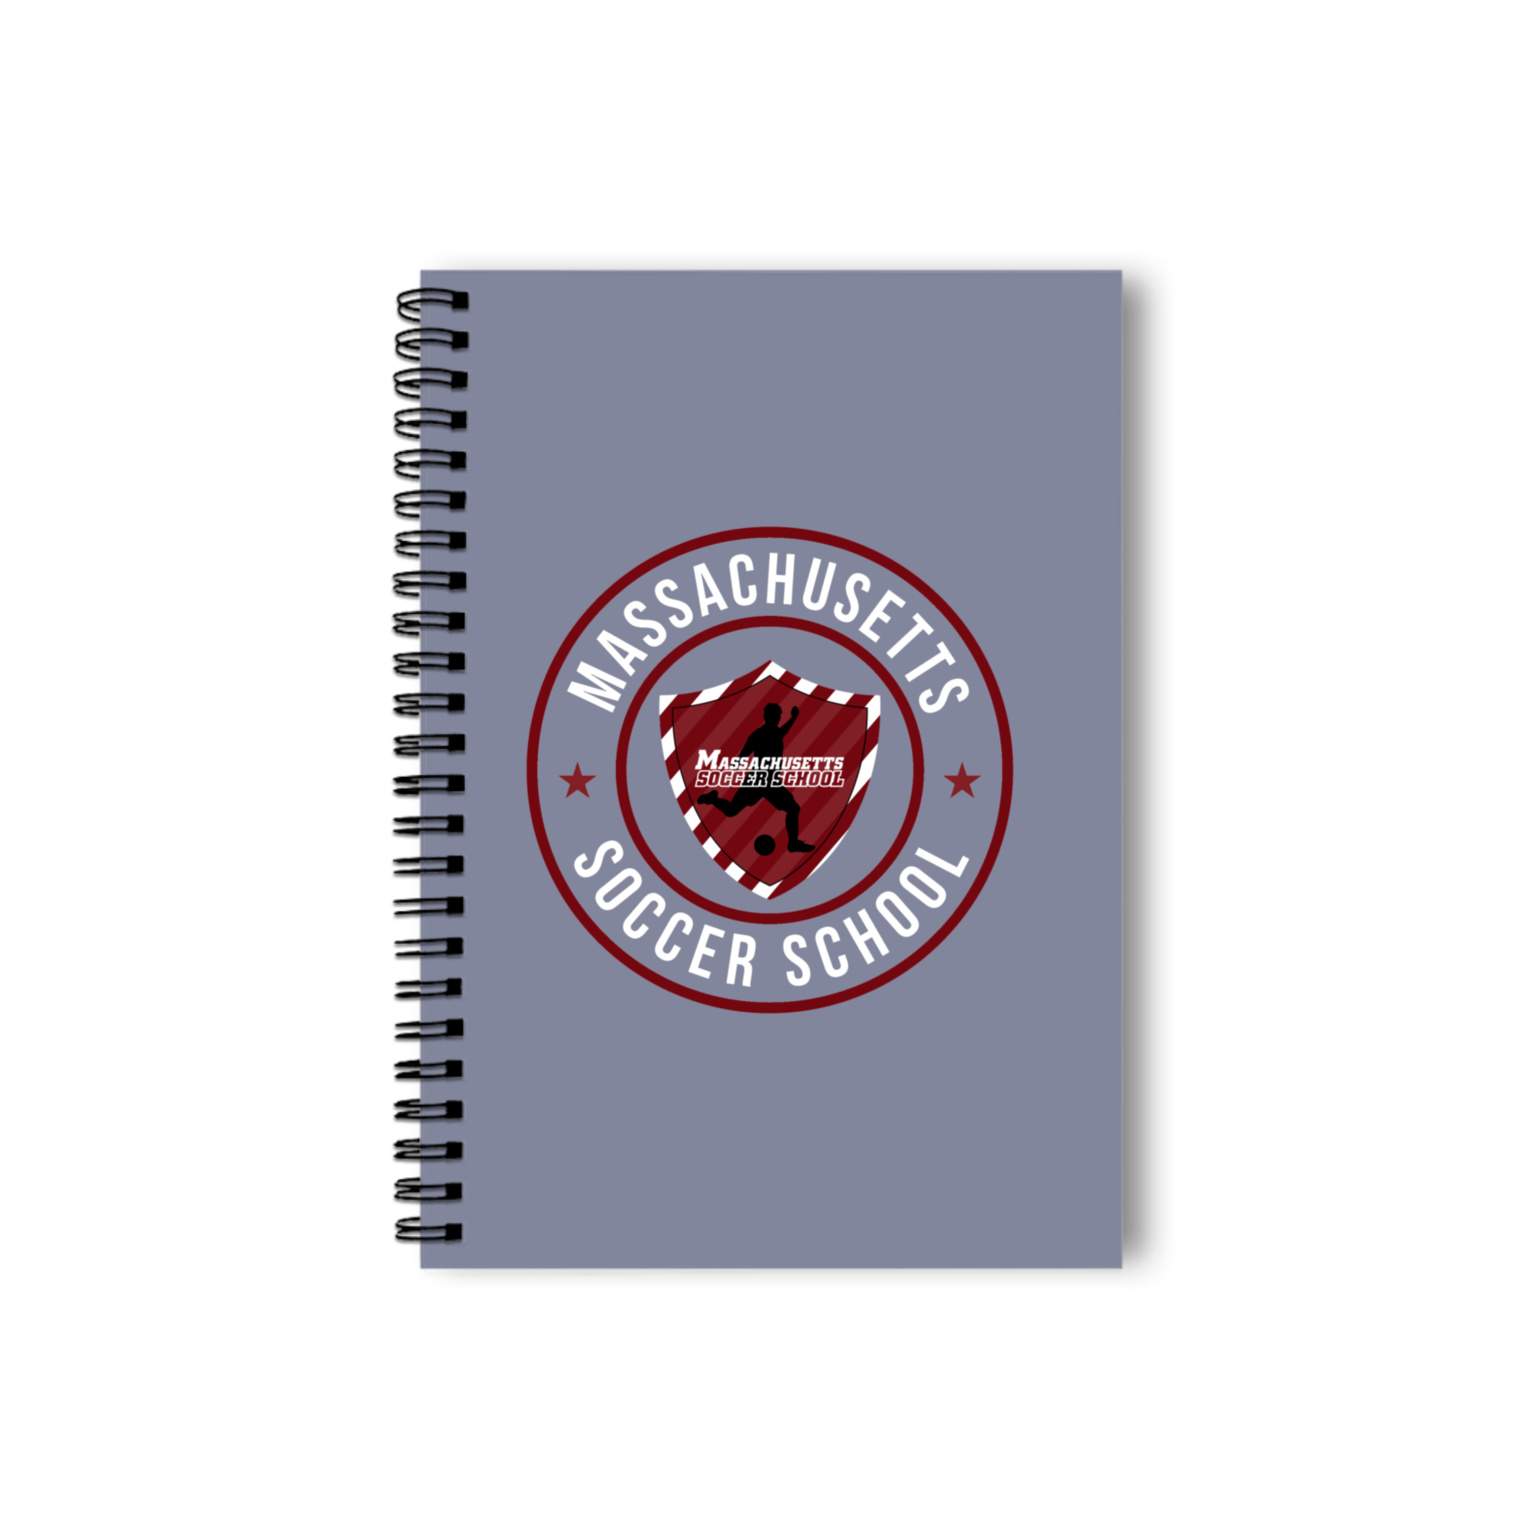 Massachusetts Soccer School Notebook